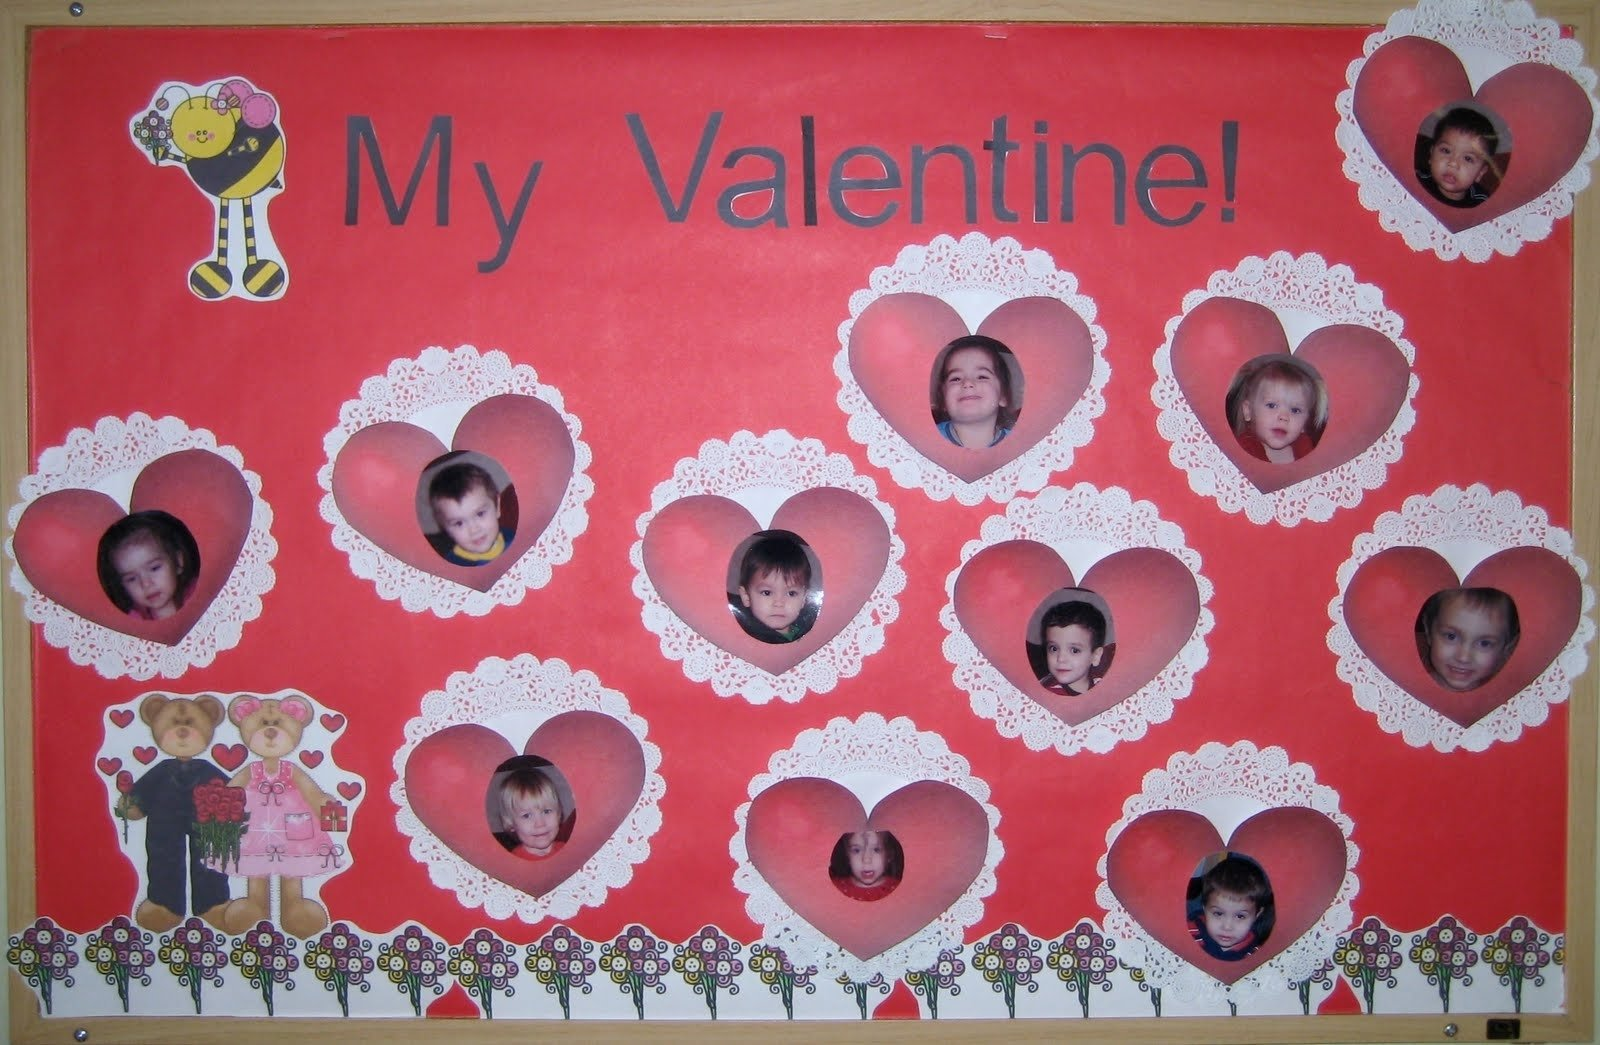 10 Cute February Bulletin Board Ideas For Preschool 1 2 3 learn curriculum bee my valentine bulletin board 2